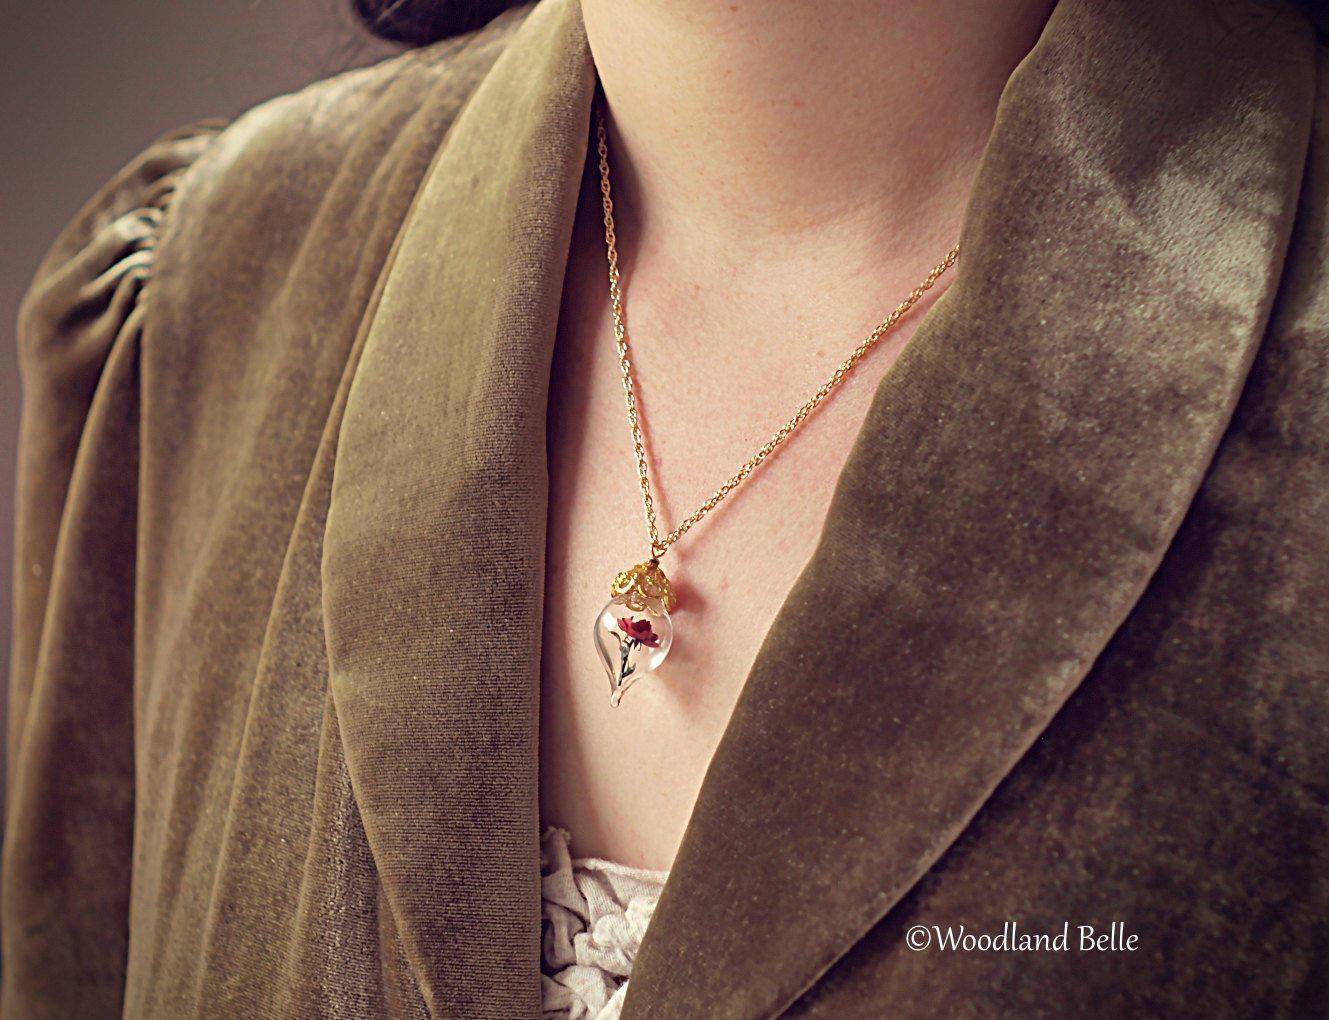 Gold Daffodil Necklace - Yellow Daffodil Flower Glass Pendant - Gold, Sterling Silver, or Rose Gold - Personalized Gift - by Woodland Belle